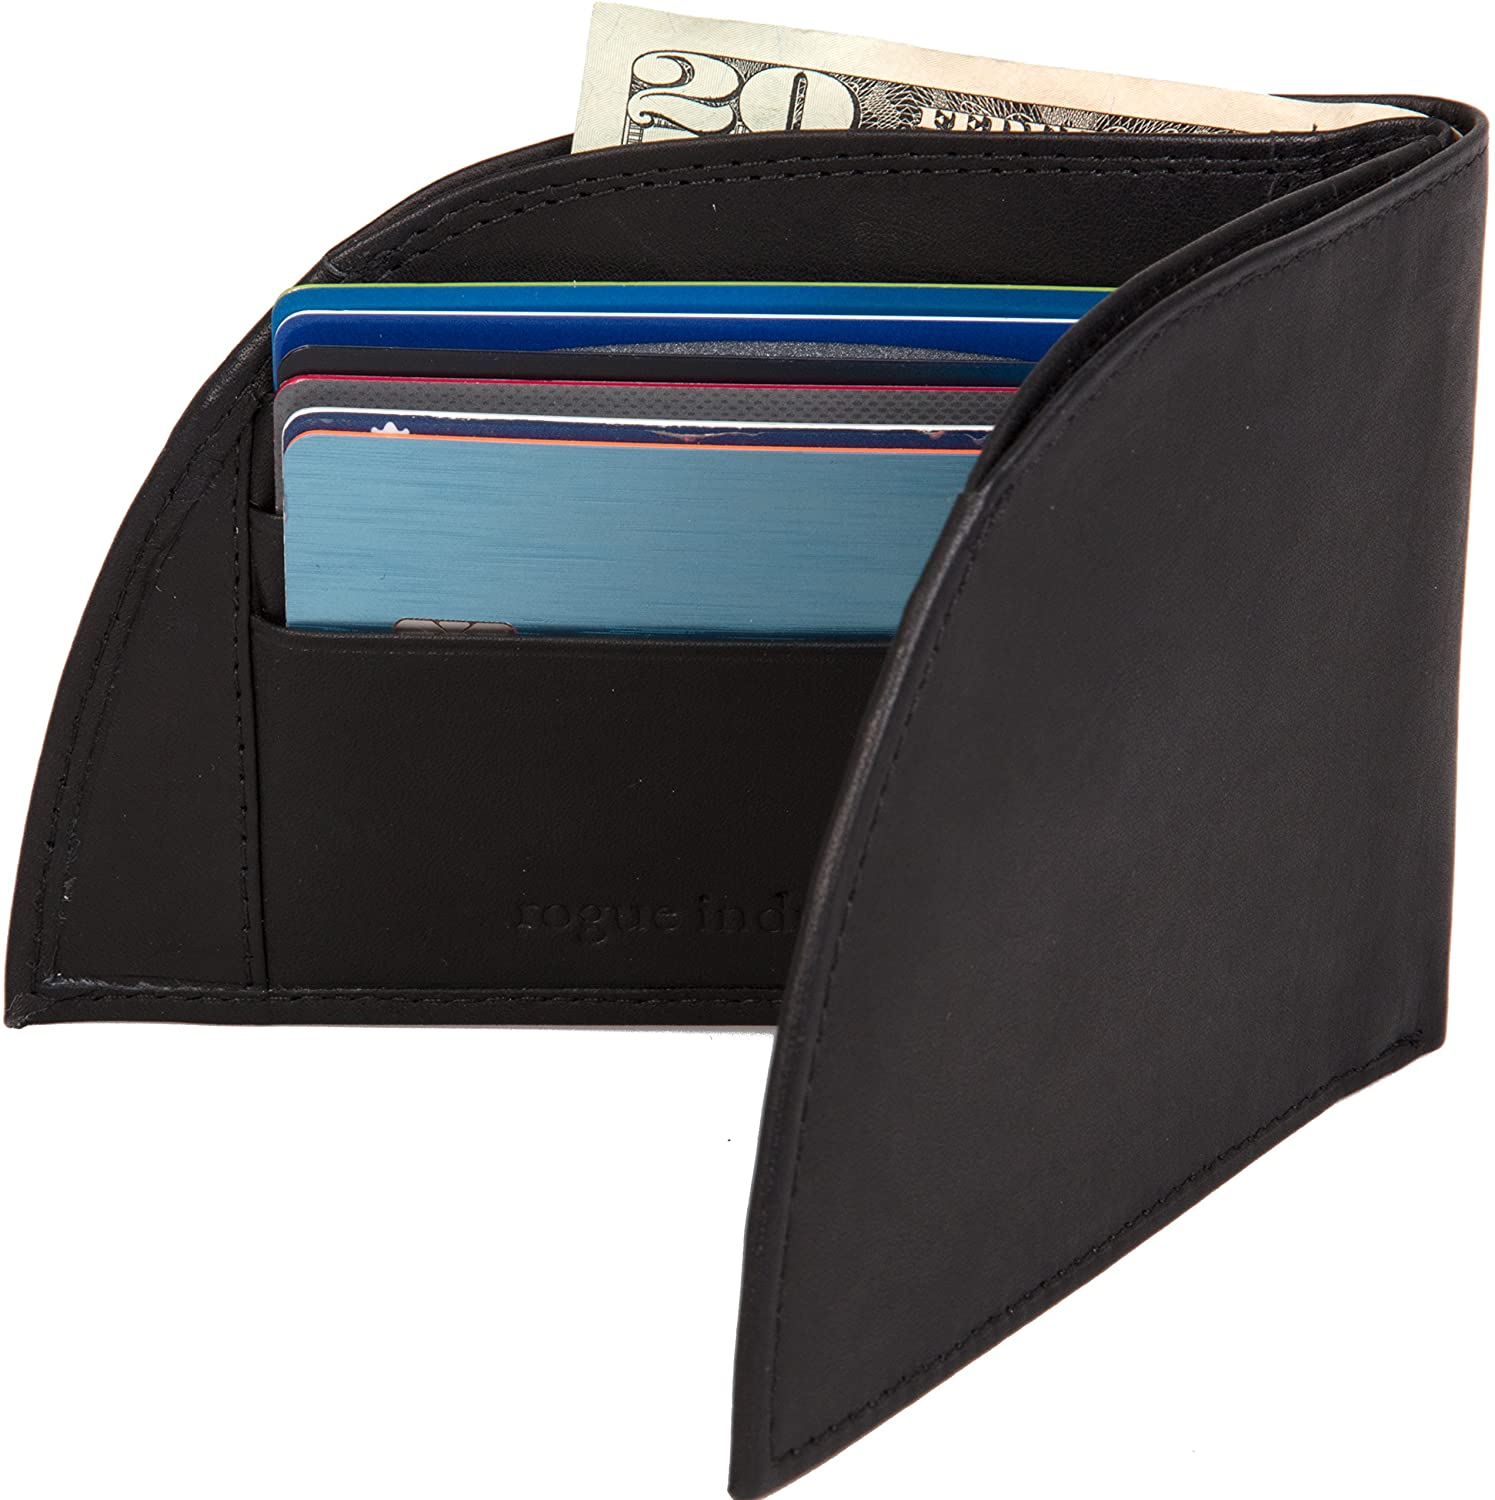 Front Pocket Wallet by Rogue Industries - Genuine American Leather with RFID Block, Holds 6 Cards - Black